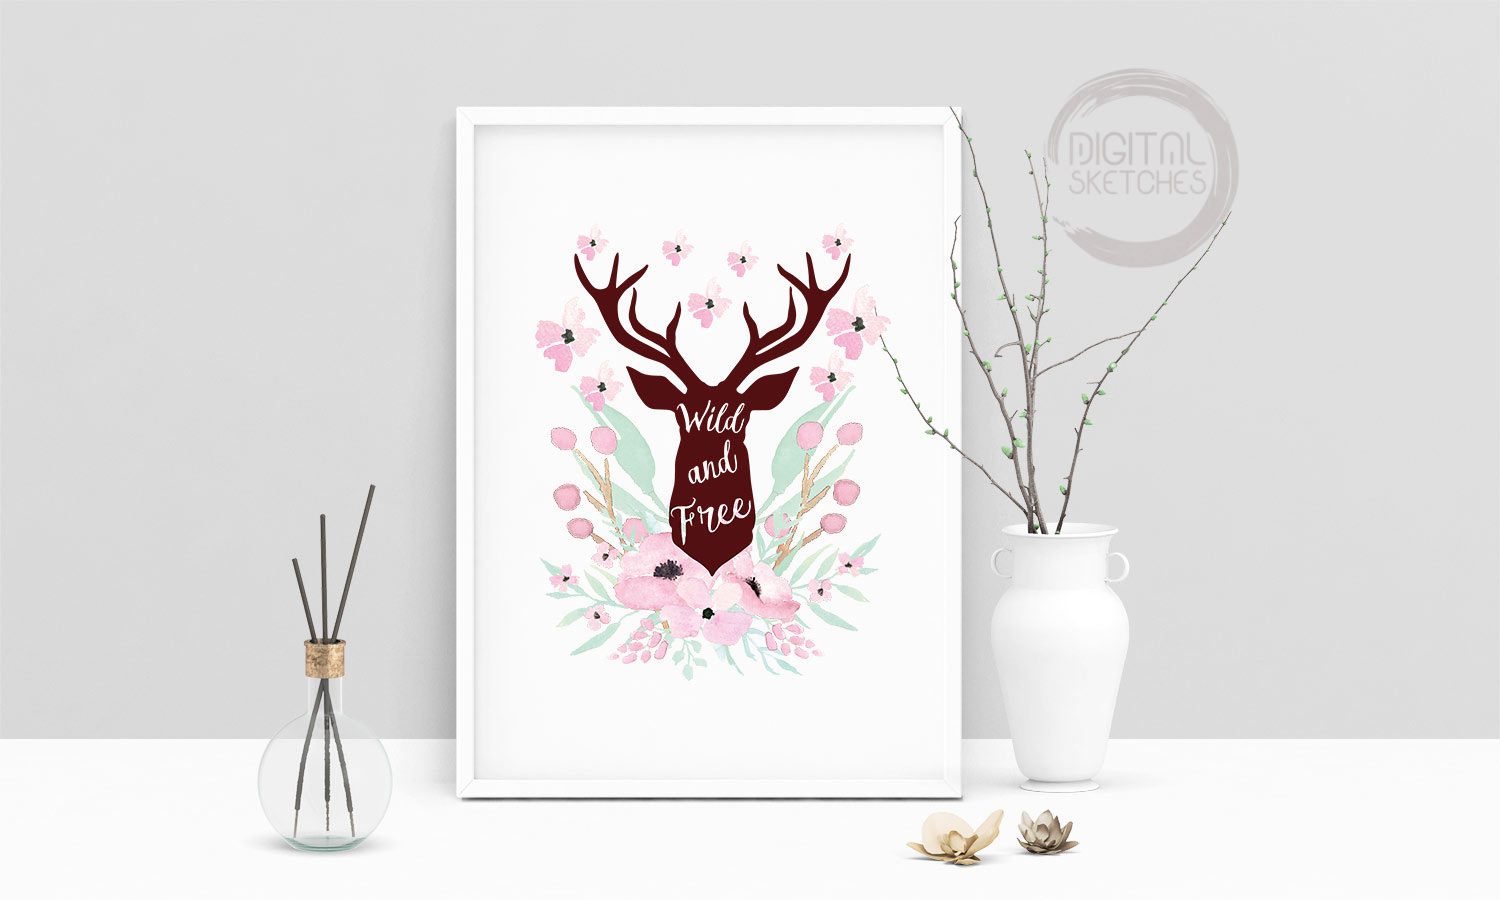 Digital Sketches \u2014 Printable Art Print Poster Wild And Free Deer